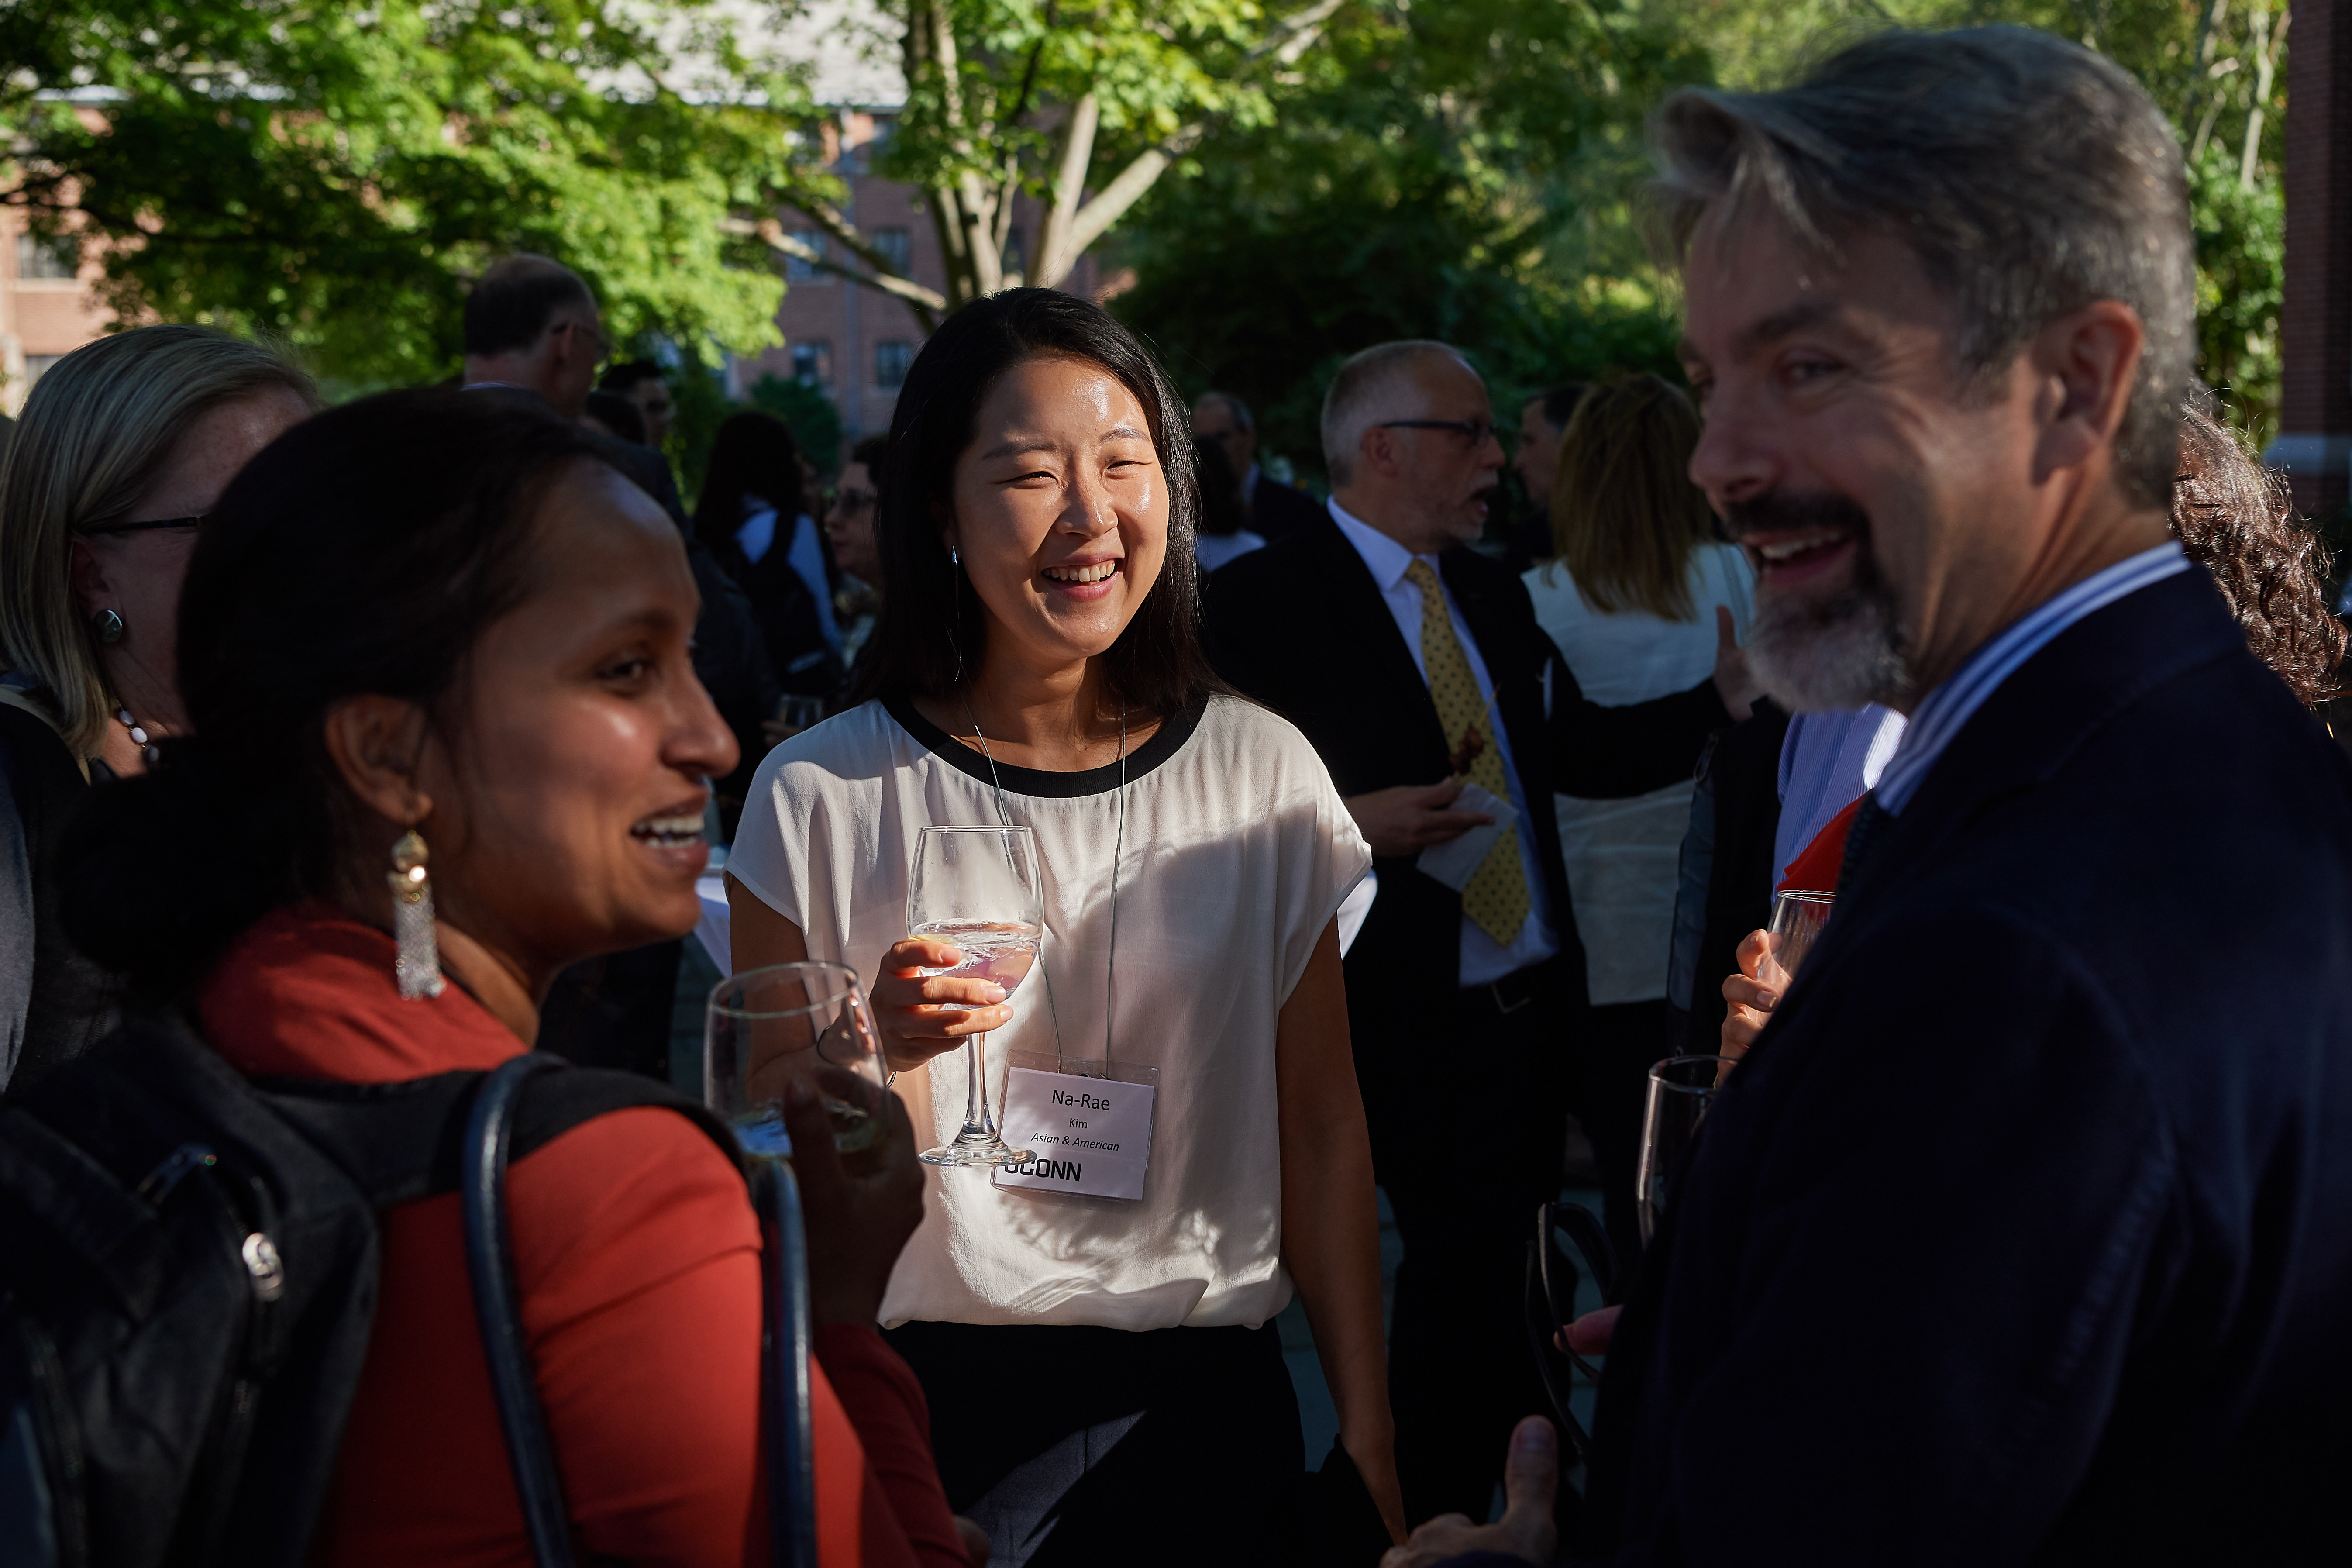 Na-Ree Kim, center, assistant professor in residence of Asian and Asian-American studies, Rupal Parekh, left, assistant professor of social work,and John Volin, vice provost for academic affairs speak at a reception following new faculty orientation on the patio of the William Benton Museum of Art. (Peter Morenus/UConn Photo)